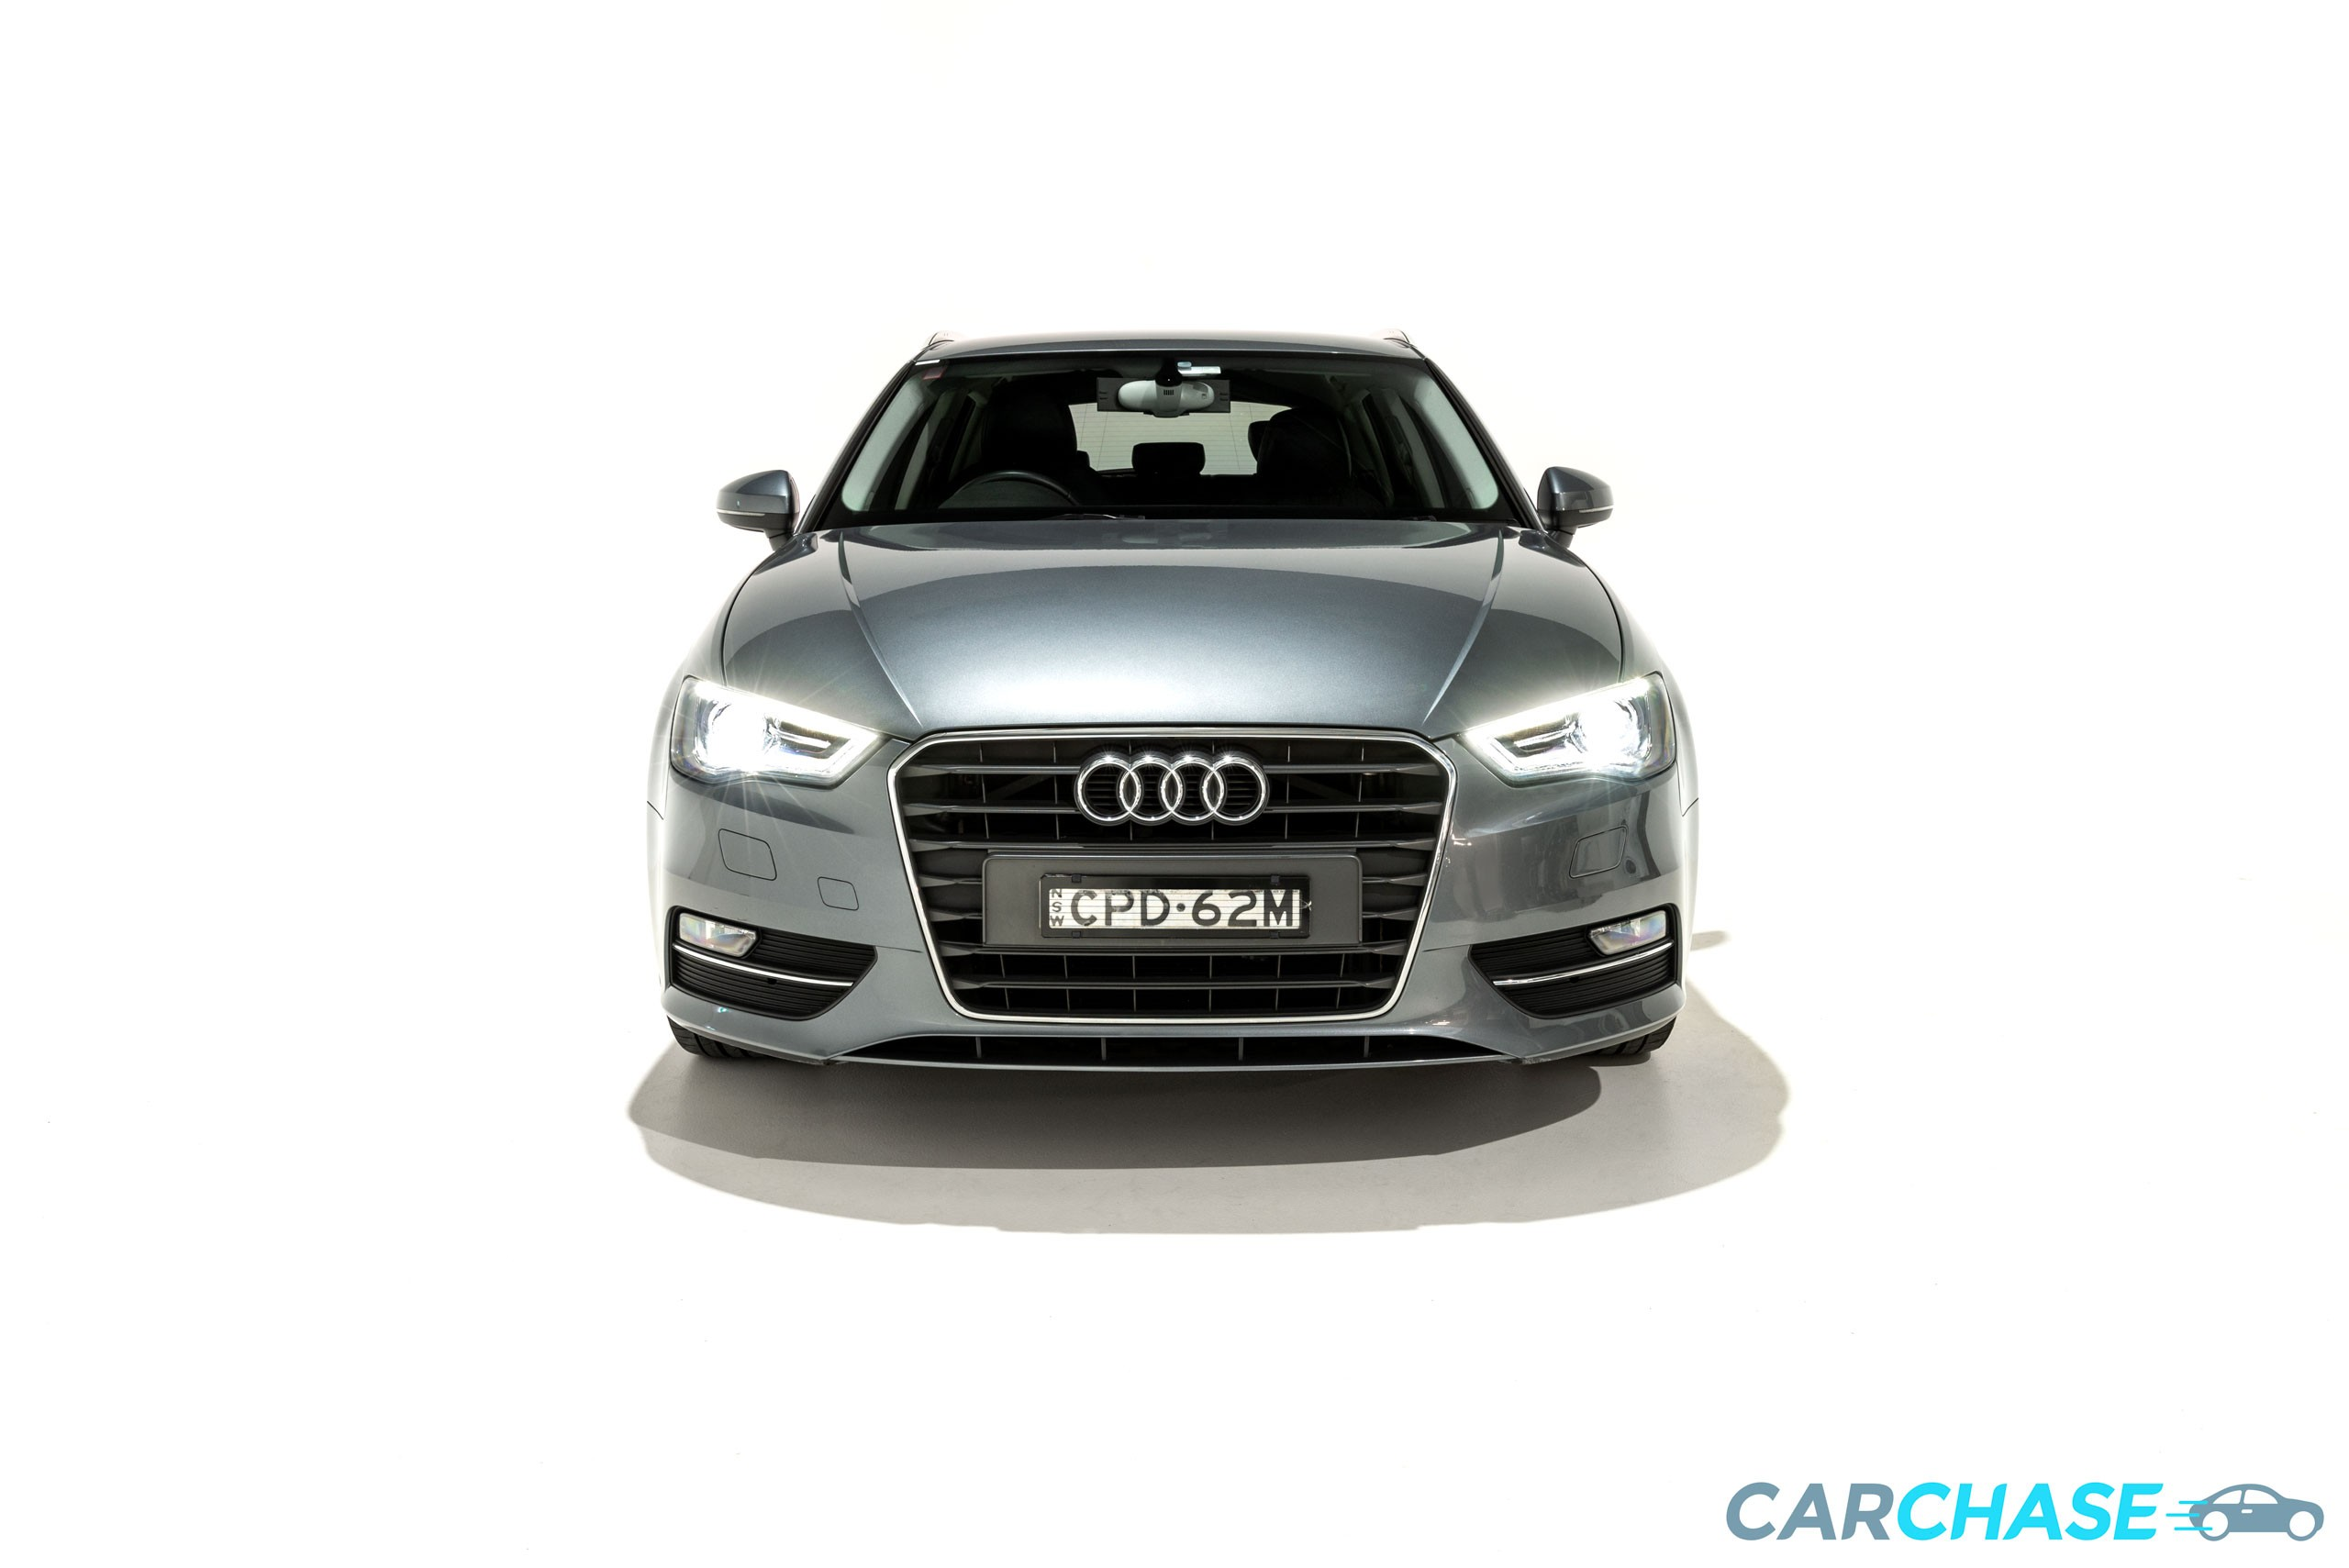 Image of front profile of 2013 Audi A3 Ambition